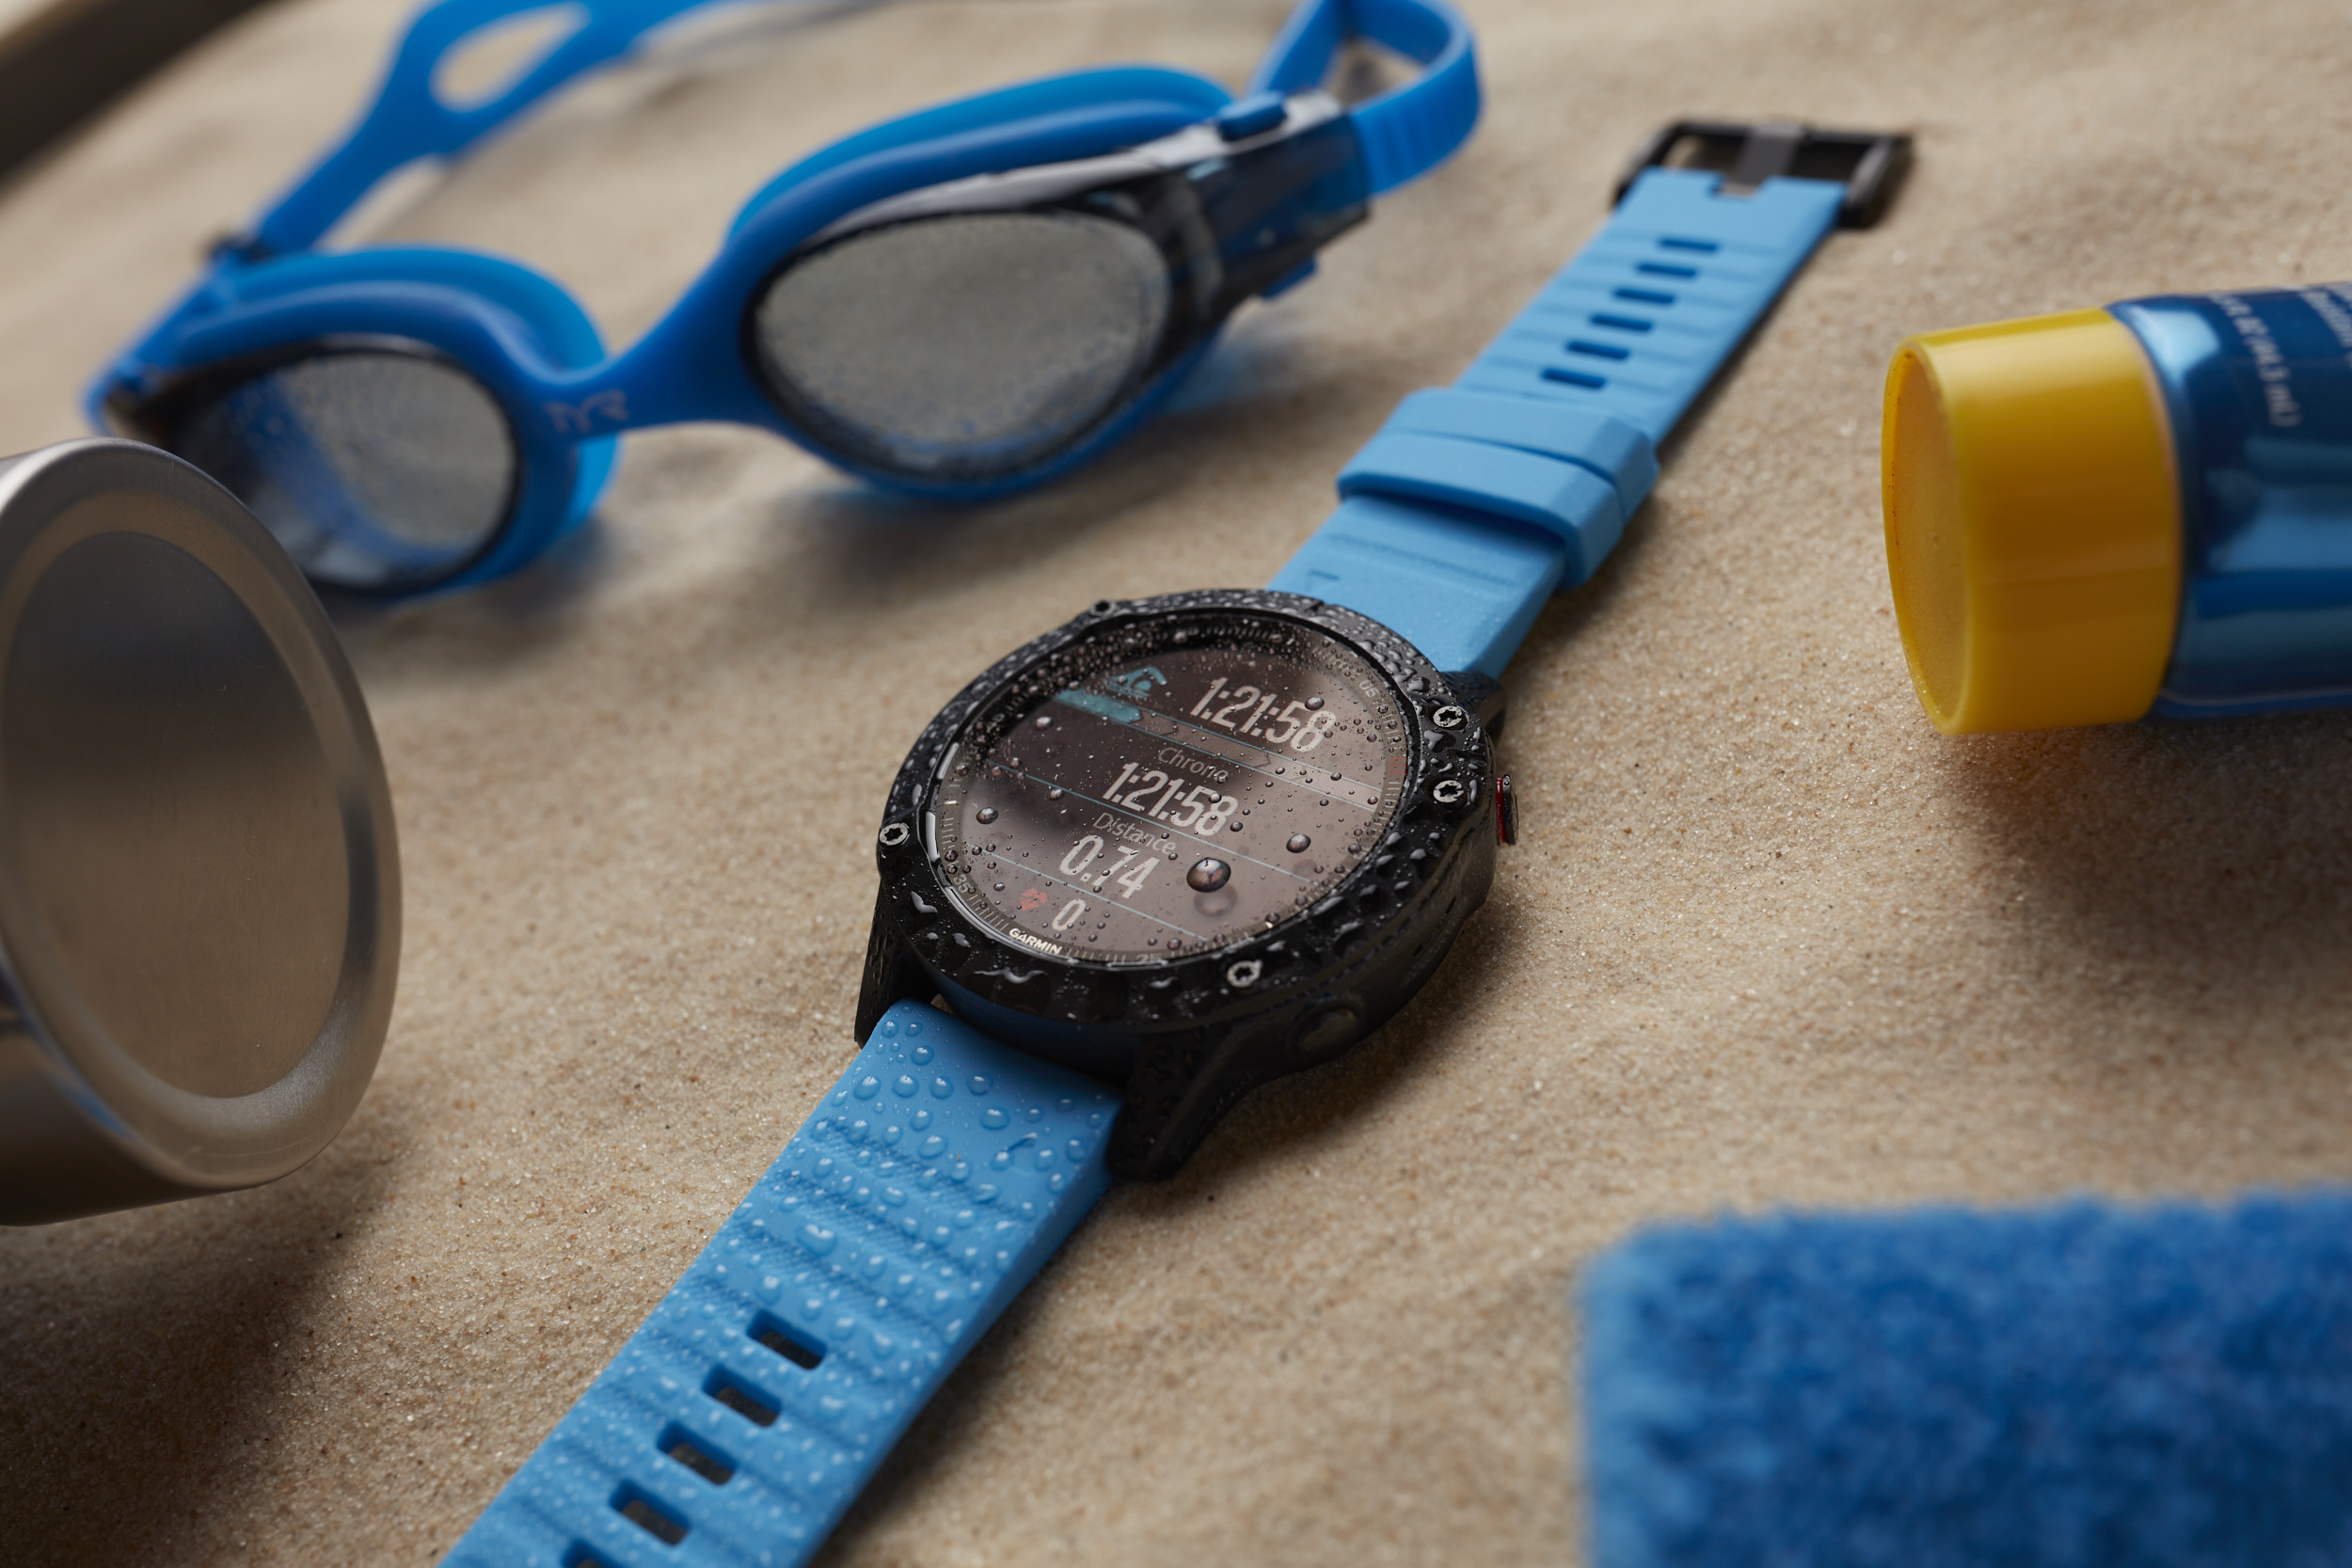 Close up lifestyle product photo of a Garmin Fenix 6 multisport watch in a still life beach scene.